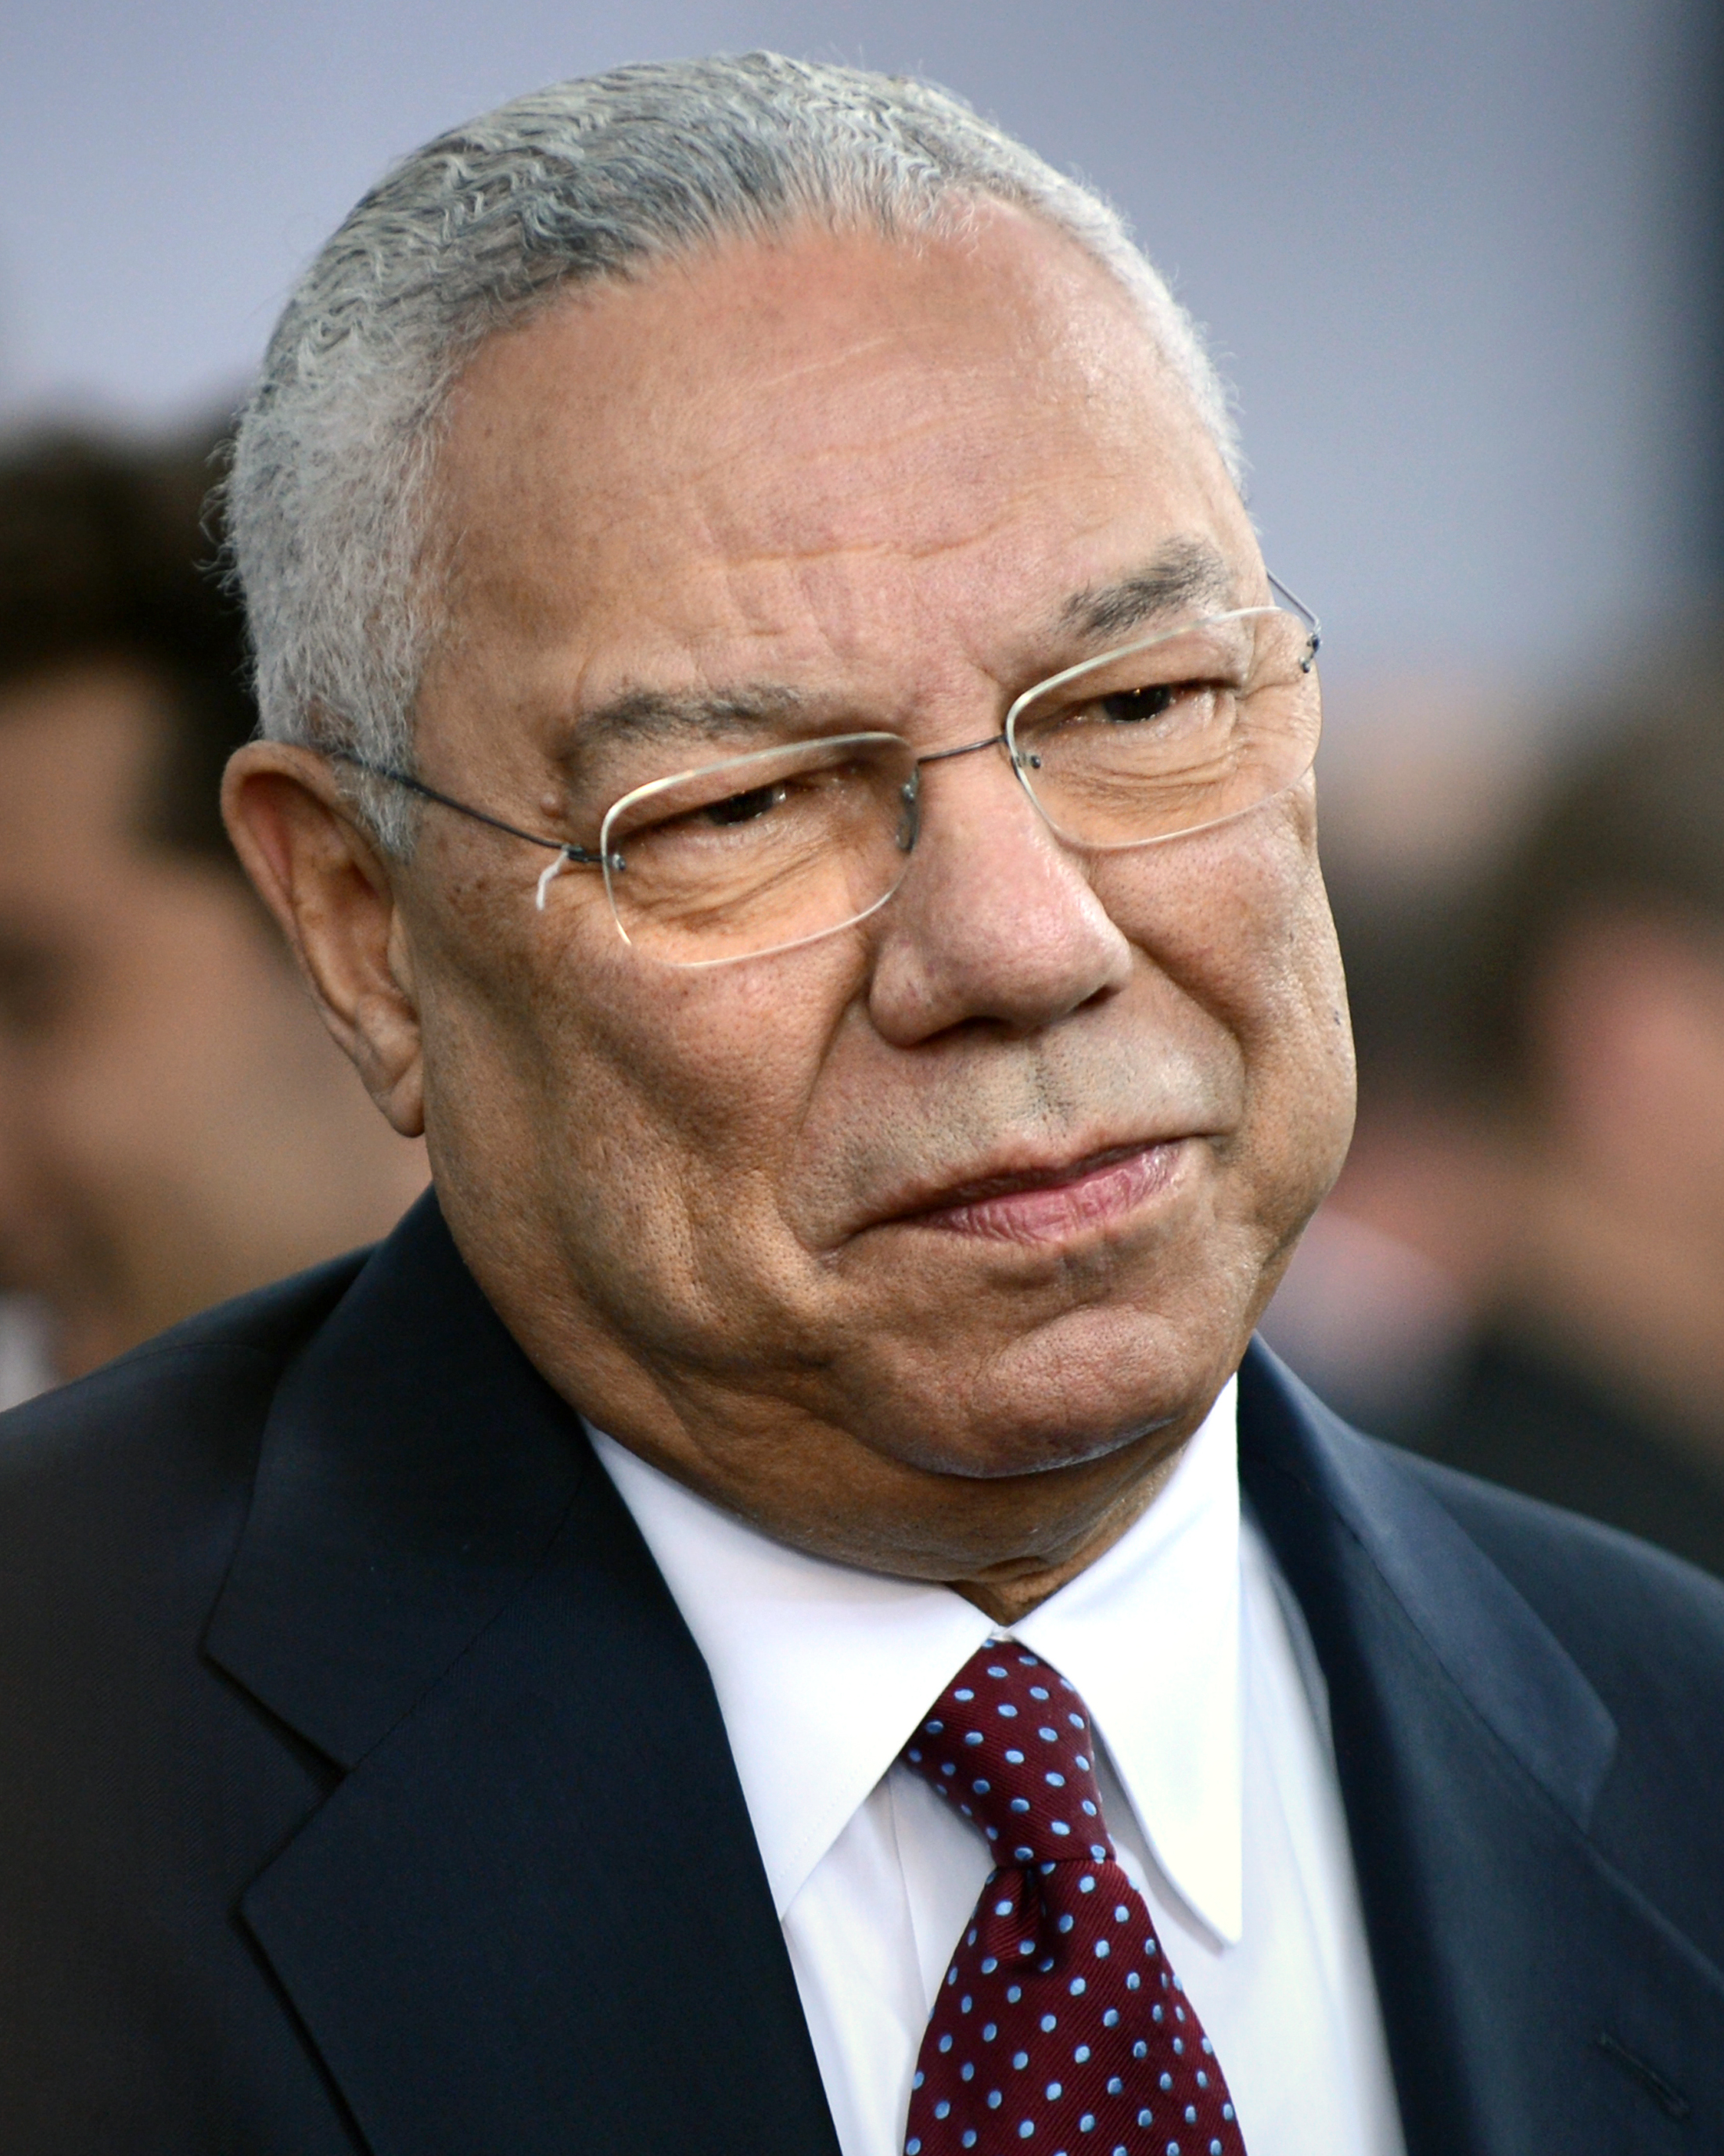 General Colin Powell's Full Remarks at the 2020 Democratic National Convention